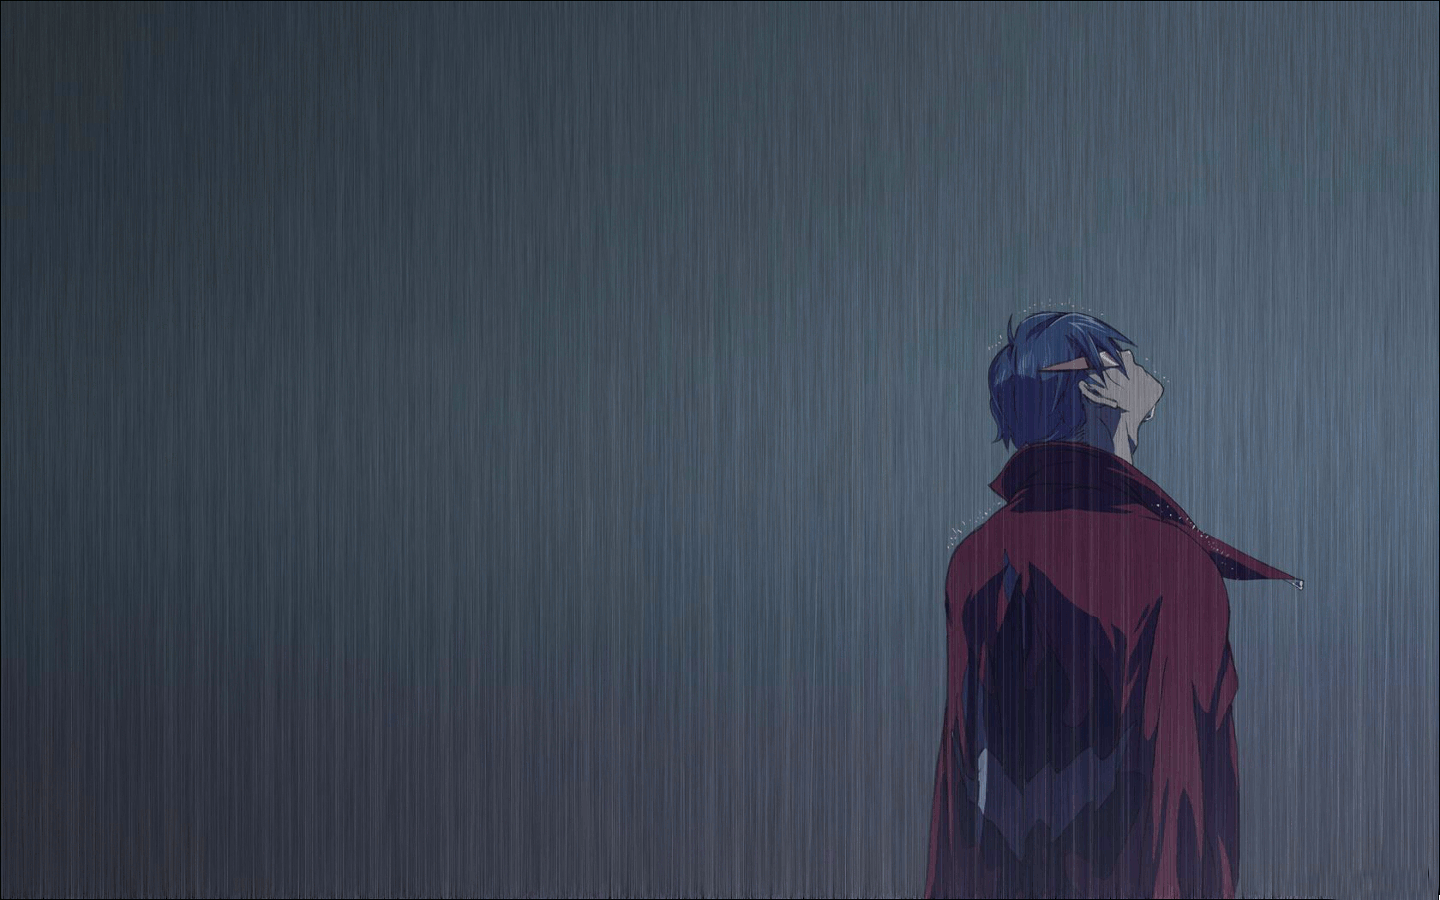 Sad anime wallpaper wallpapersafari - Sad man hd wallpaper ...